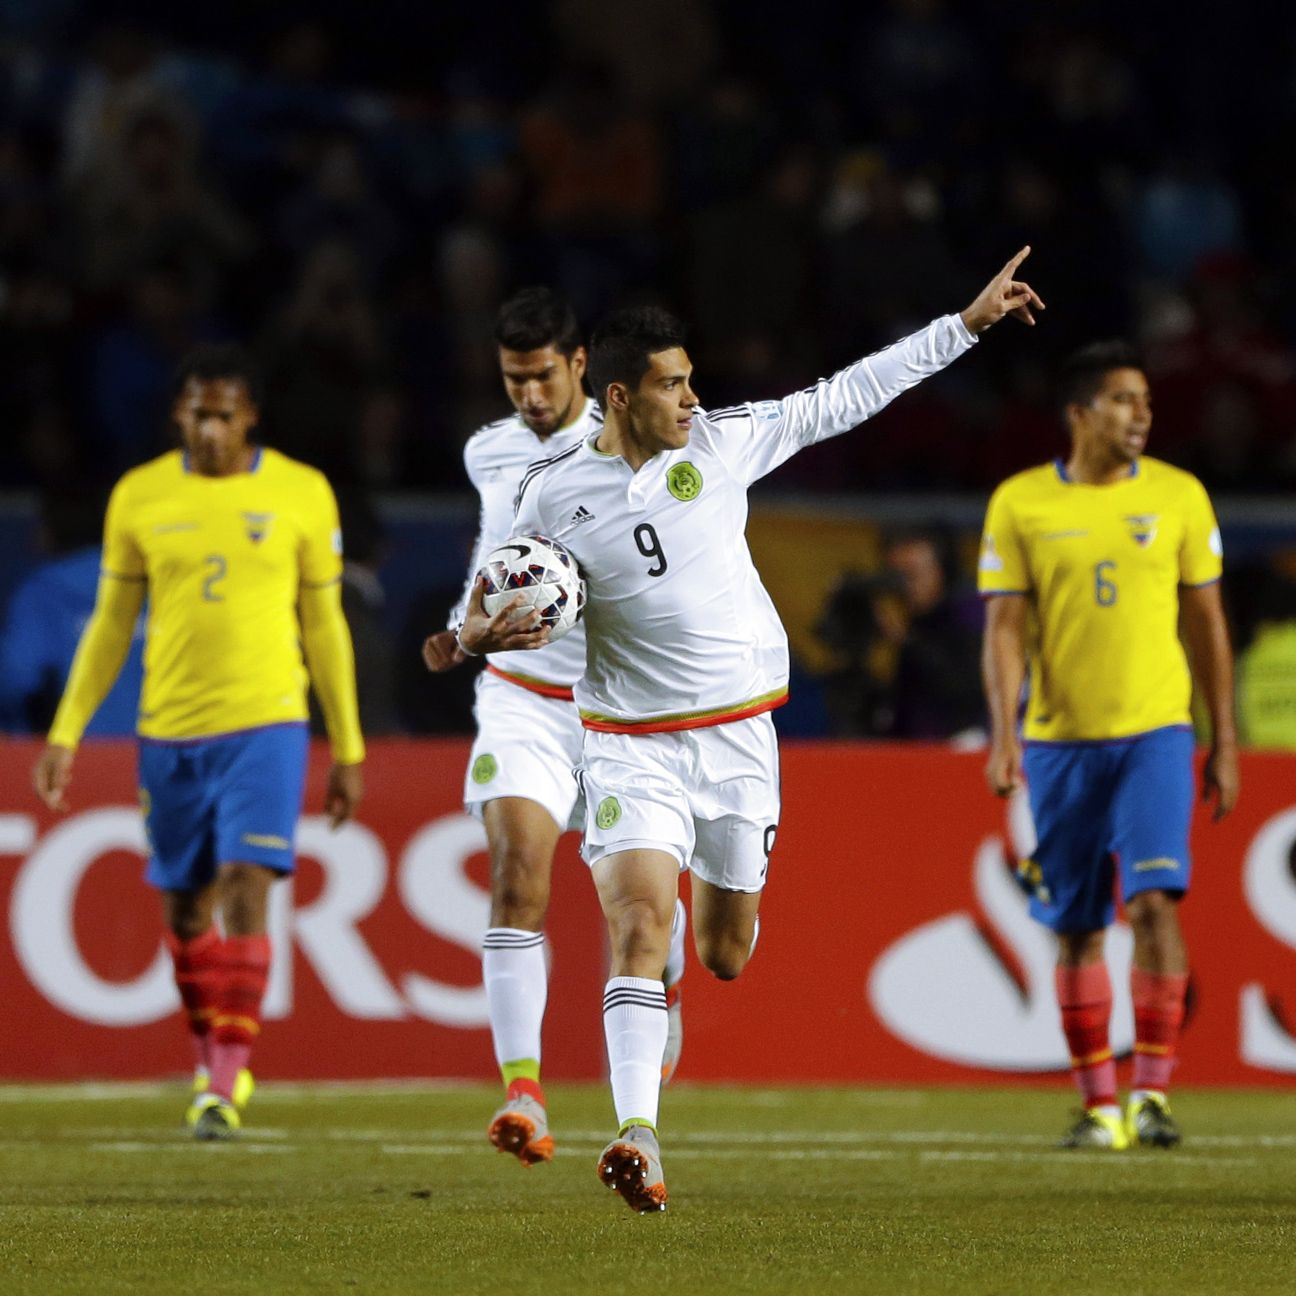 Raul Jimenez's penalty conversion gave Mexico a late glimmer of hope.